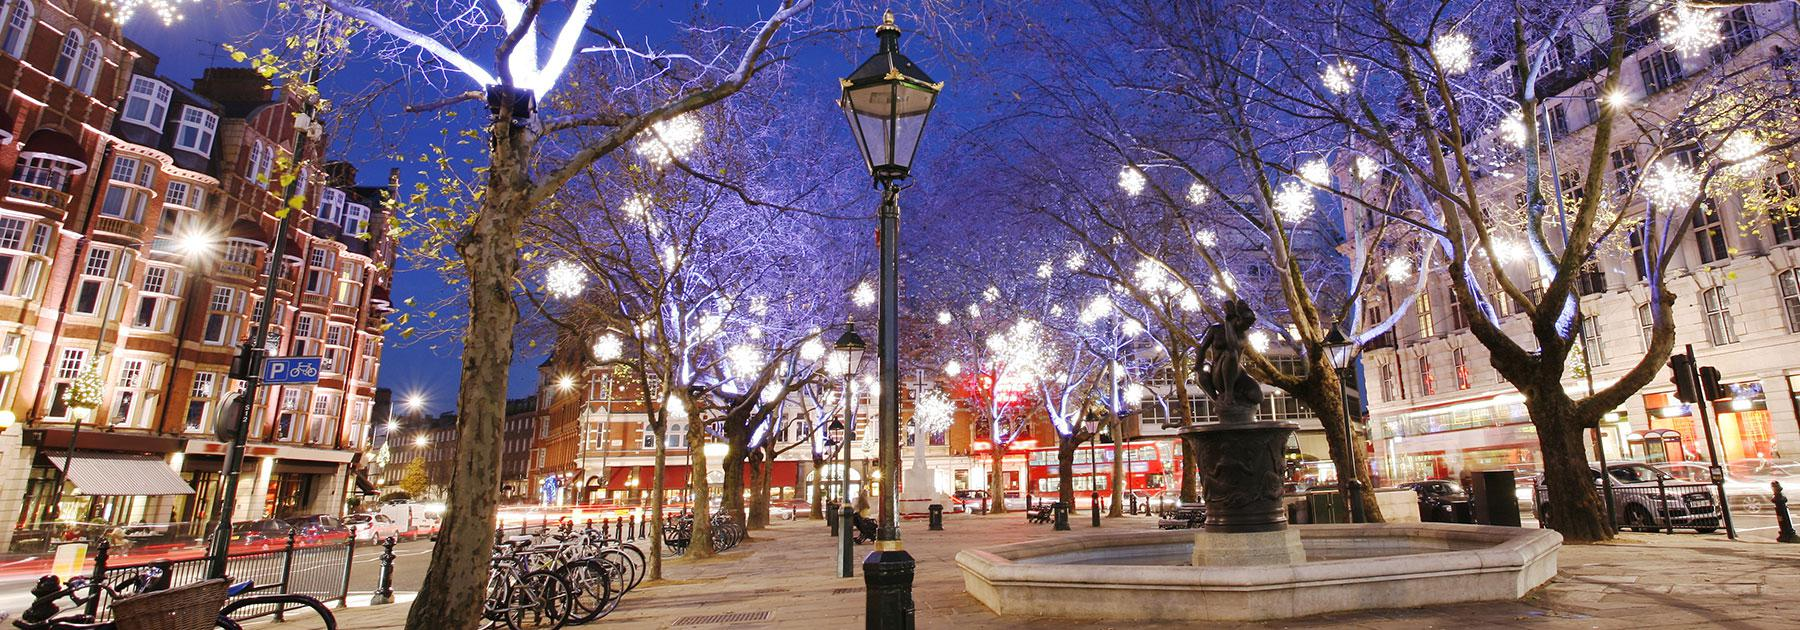 Christmas In London Vacation Package